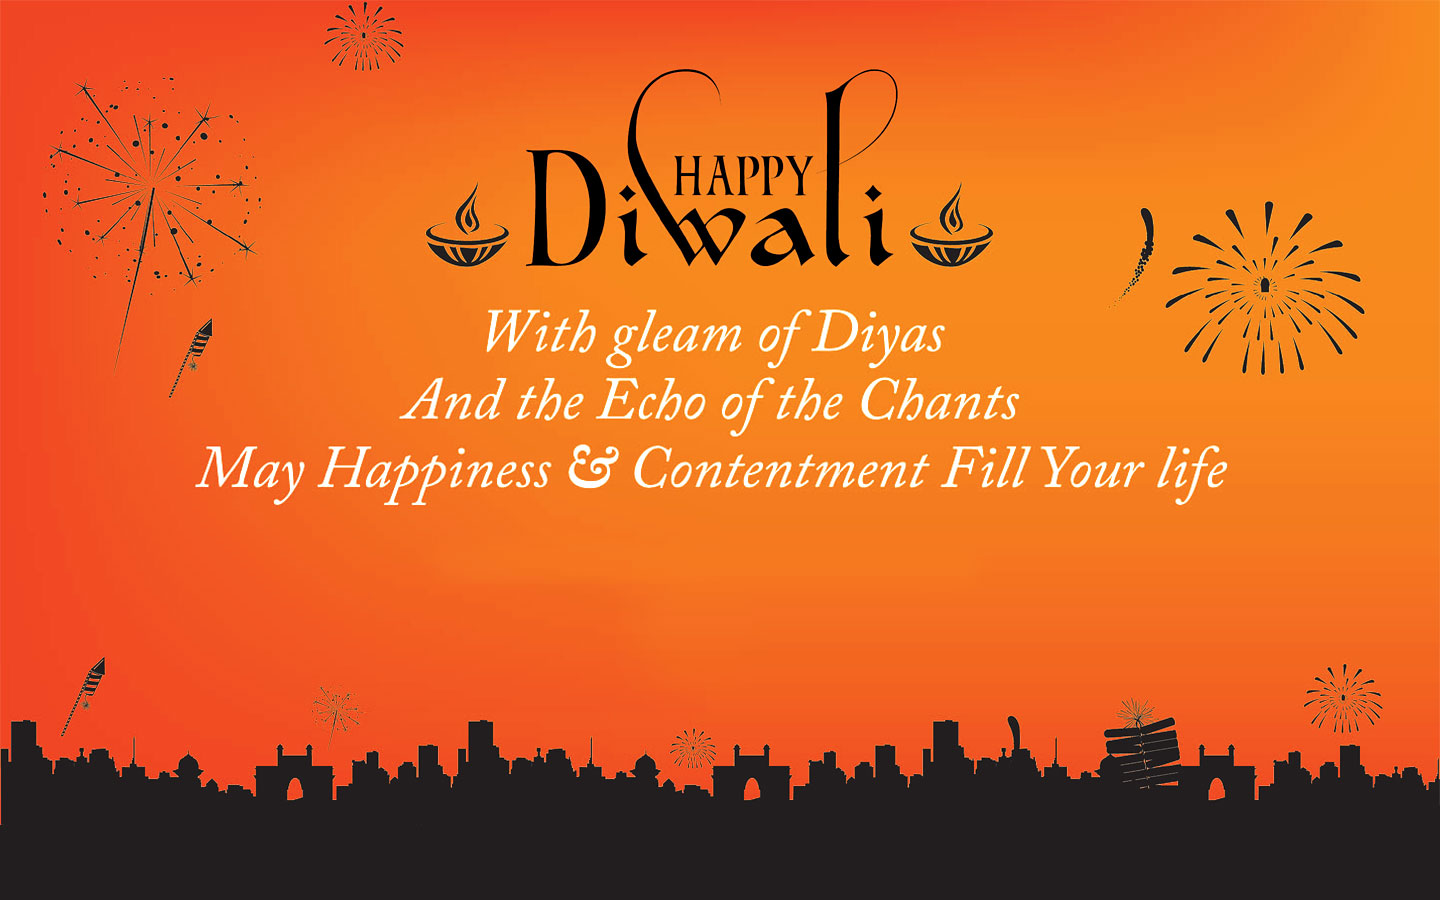 Happy Diwali Messages Deepavali Sms Wishes Greetings To Share